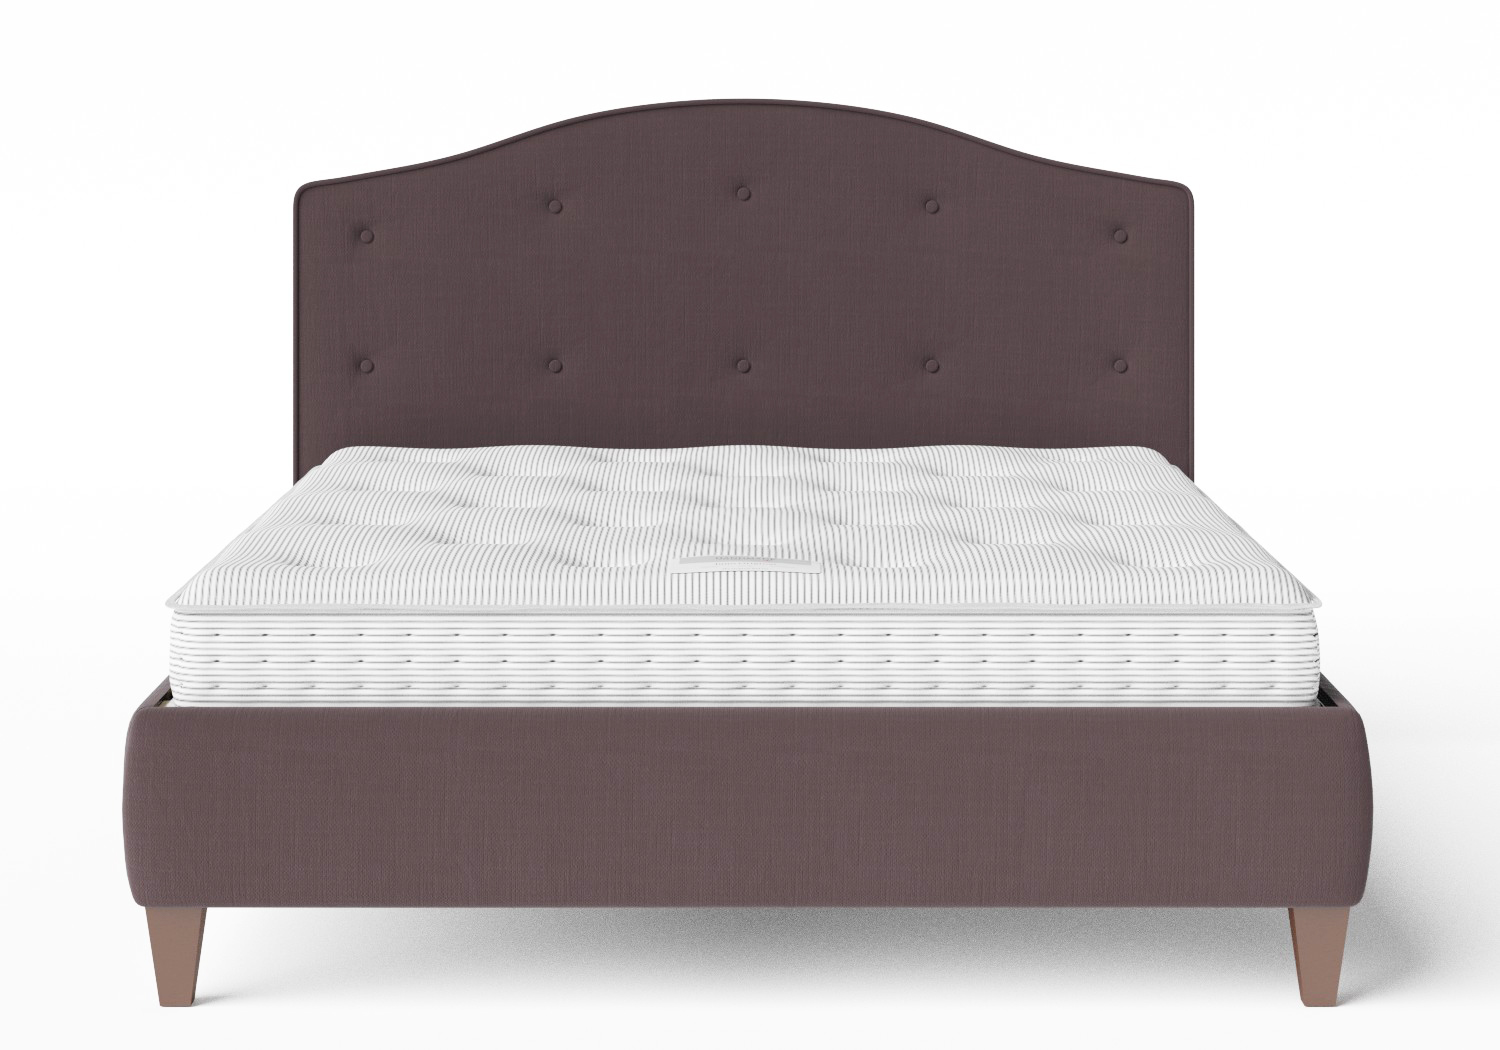 Daniella Upholstered bed in Aubergine fabric shown with Juno 1 mattress